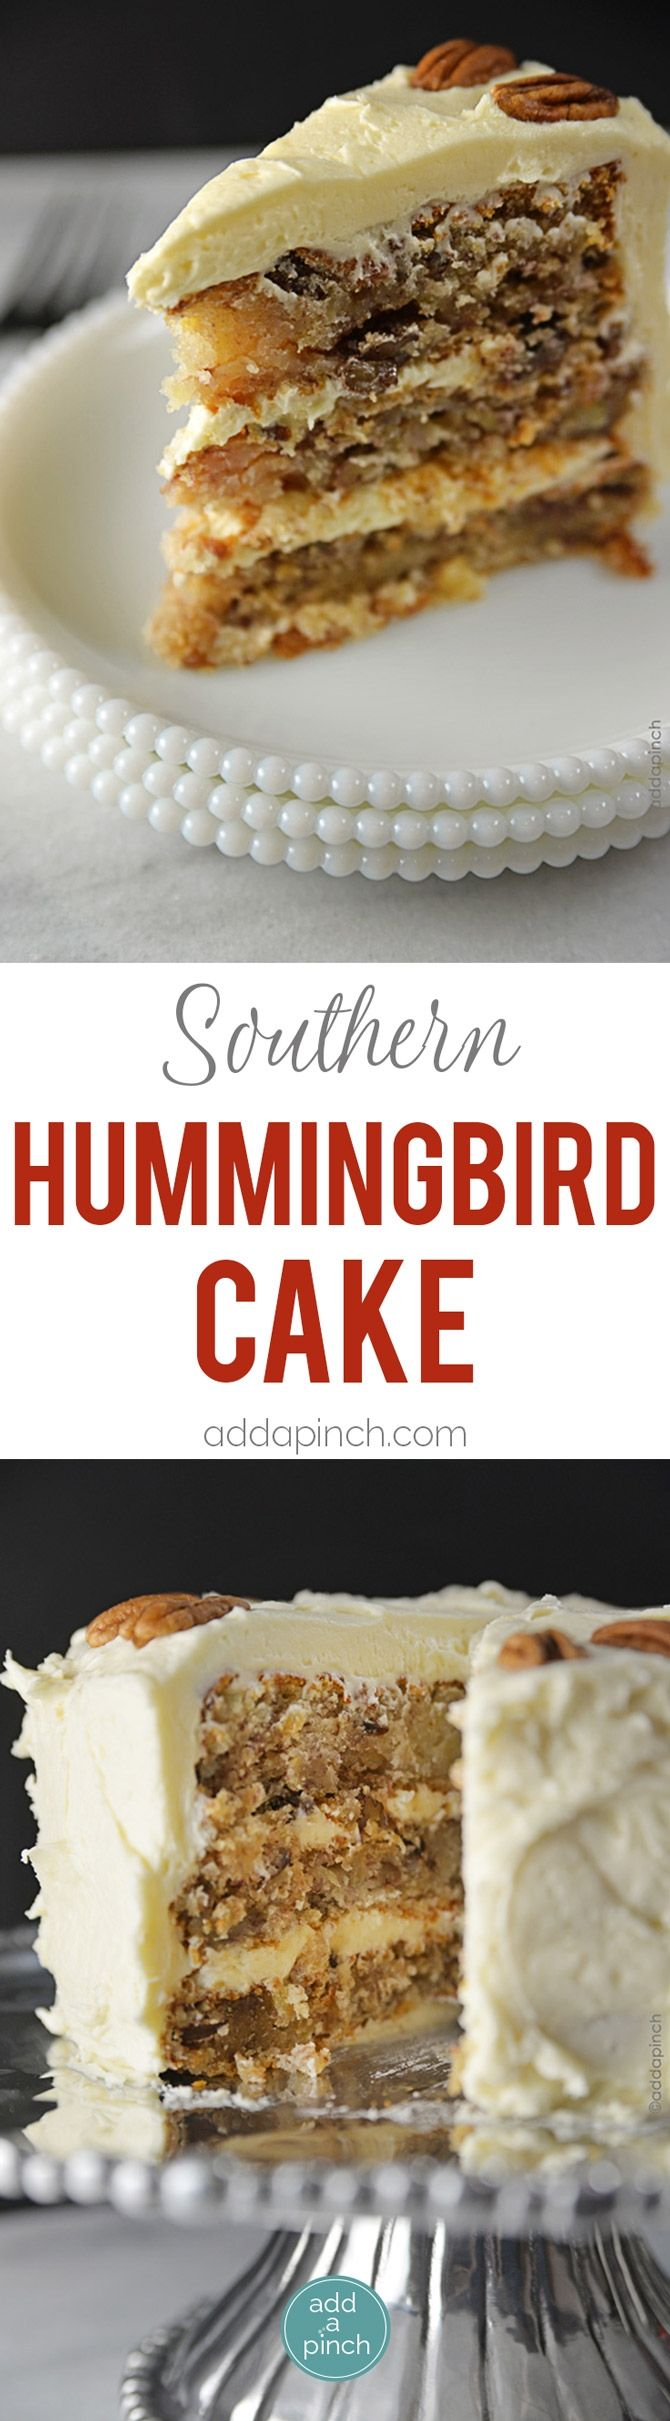 Hummingbird Cake Recipe - Hummingbird Cake is a classic, Southern cake recipe perfect for serving at so many special occasions or when entertaining. Get this heirloom Hummingbird Cake recipe for your next event. // addapinch.com #cupcake #confectionery